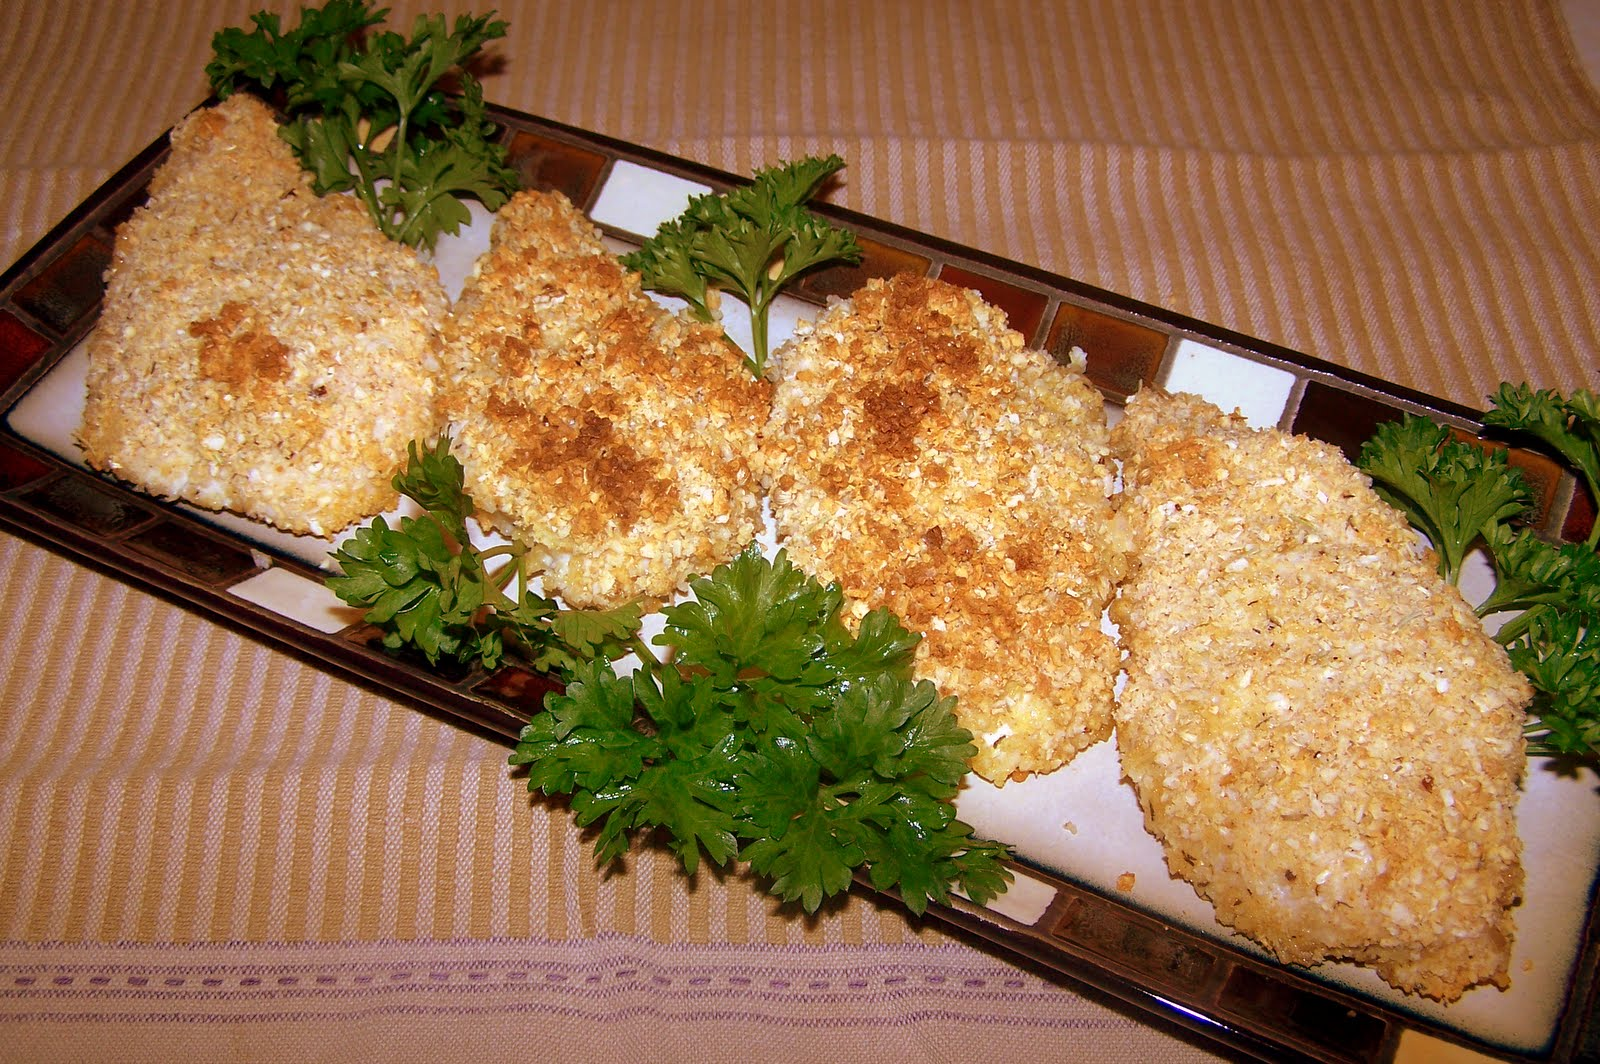 TheKitchenCookie: Parmesan Onion Crusted Baked Chicken Breasts